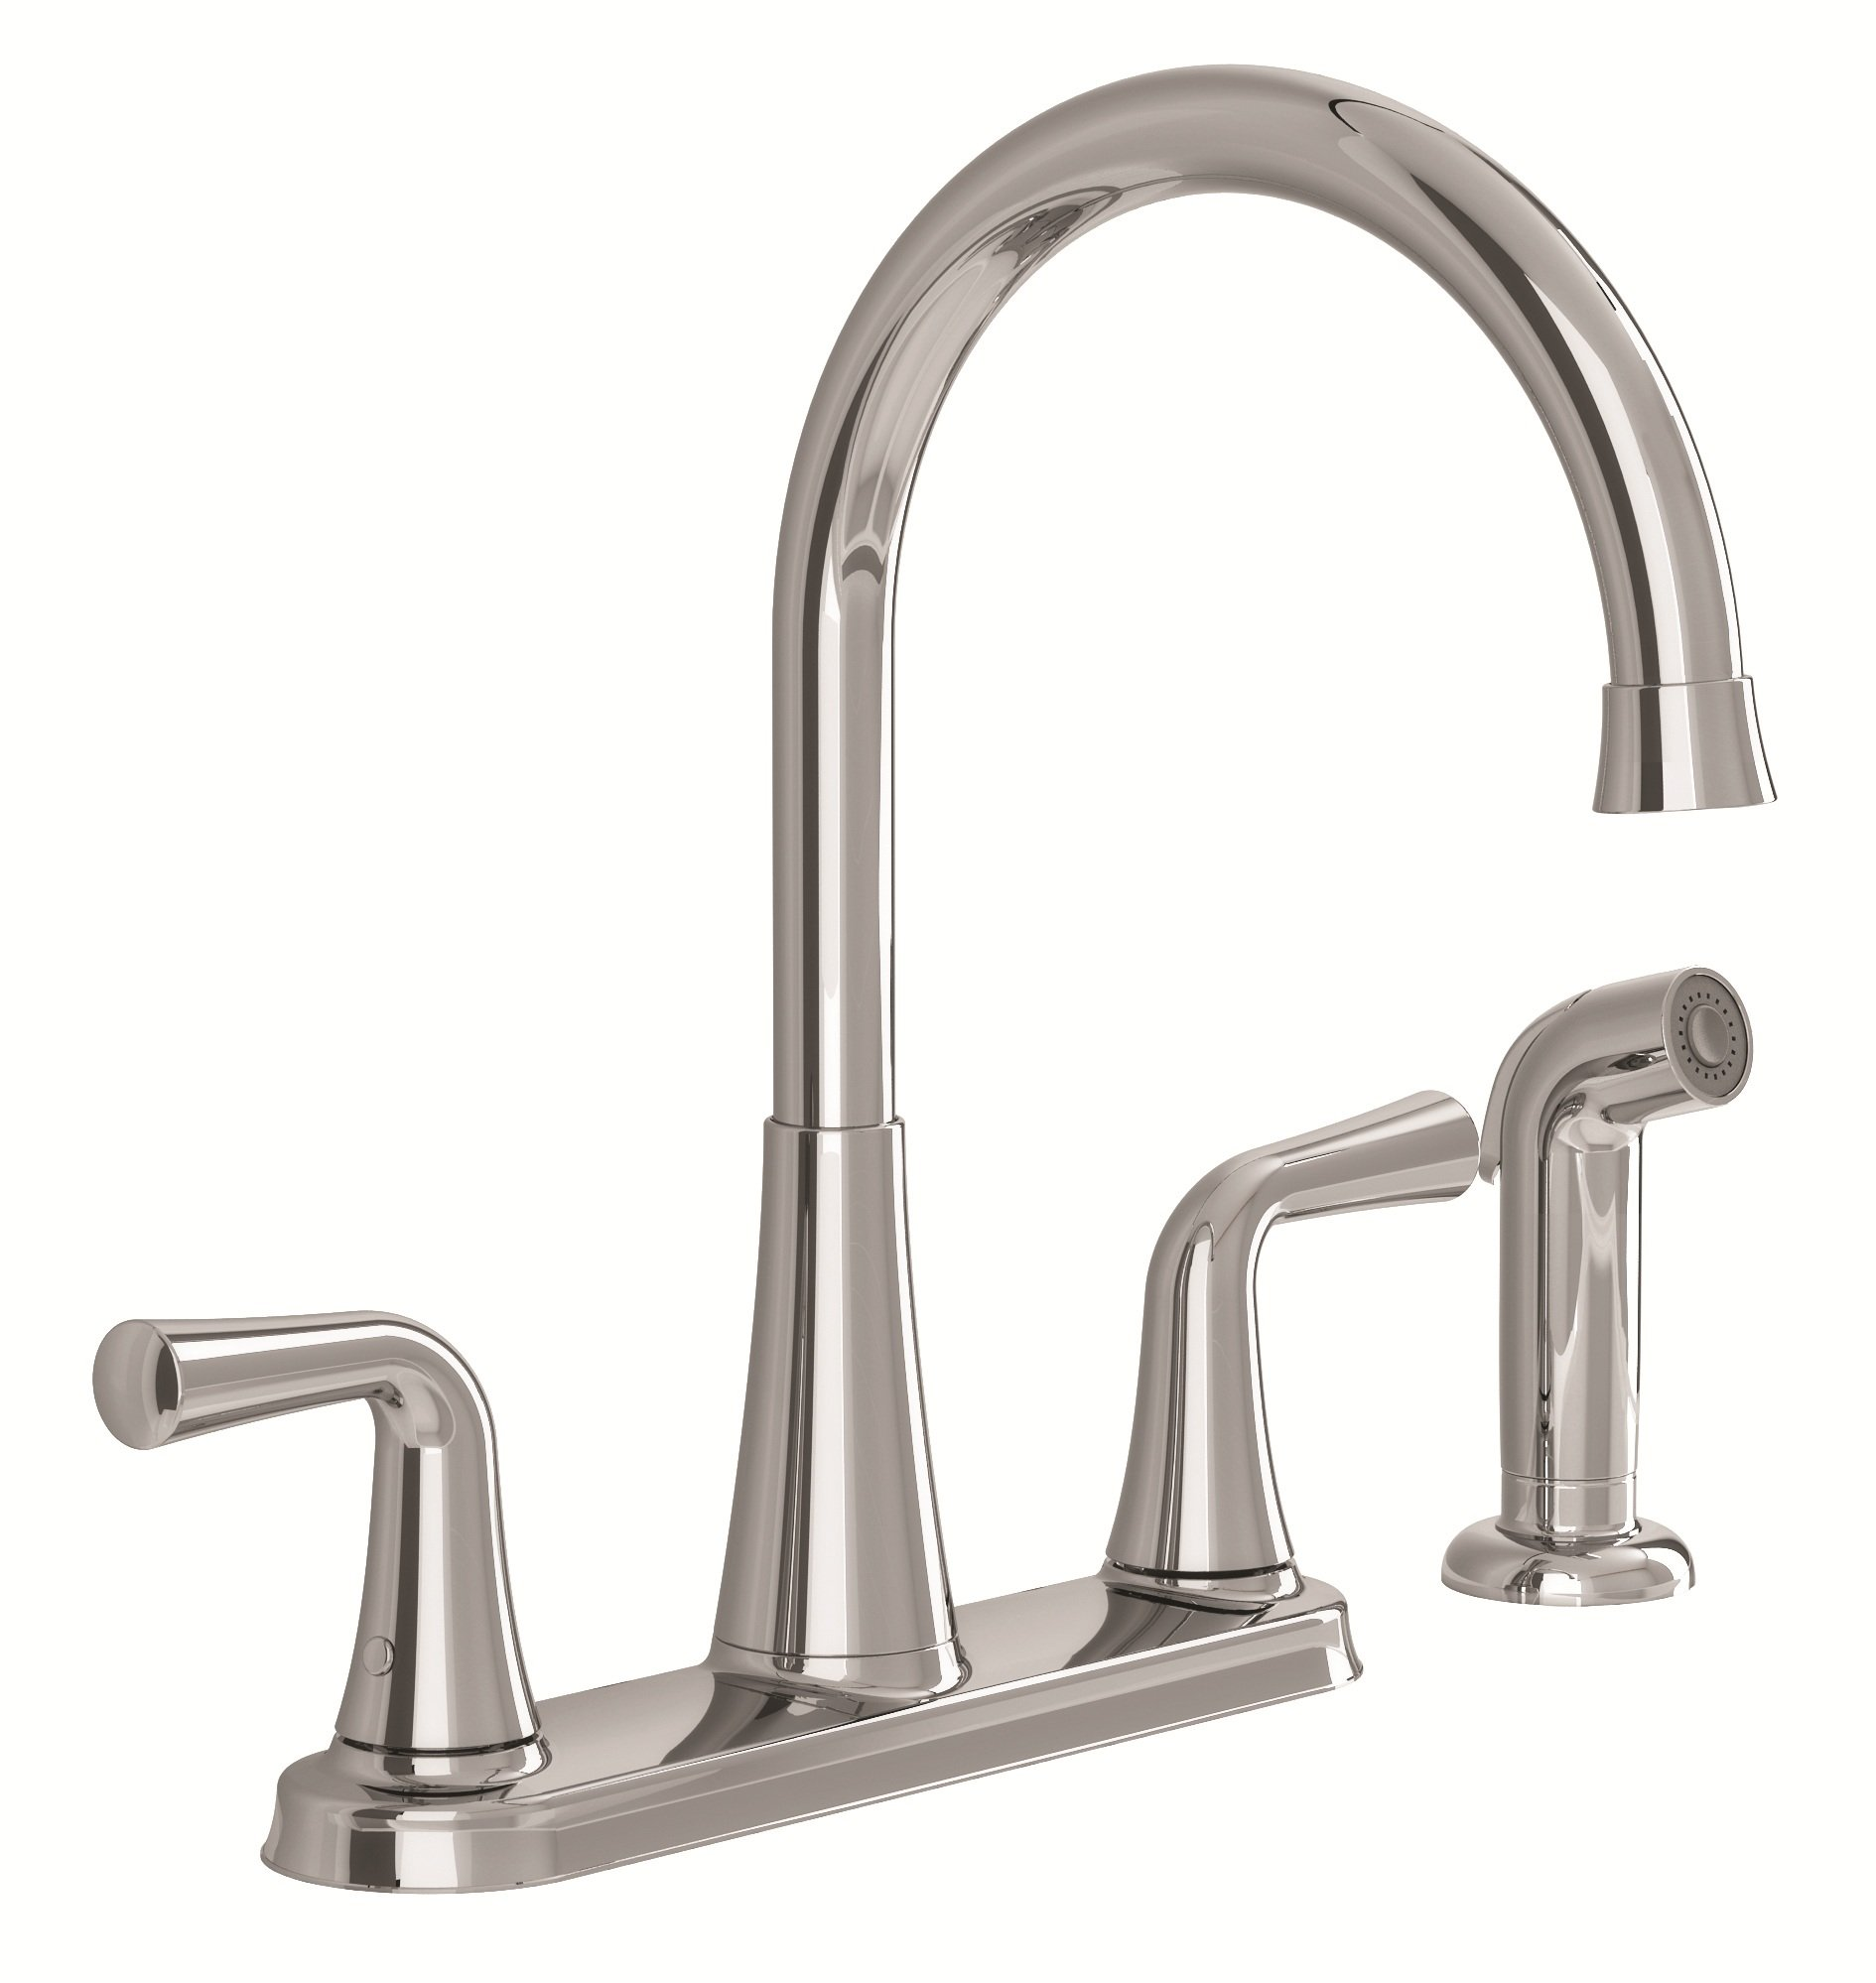 American Standard 9089501.002 Angeline Two Handle Kitchen Faucet ...